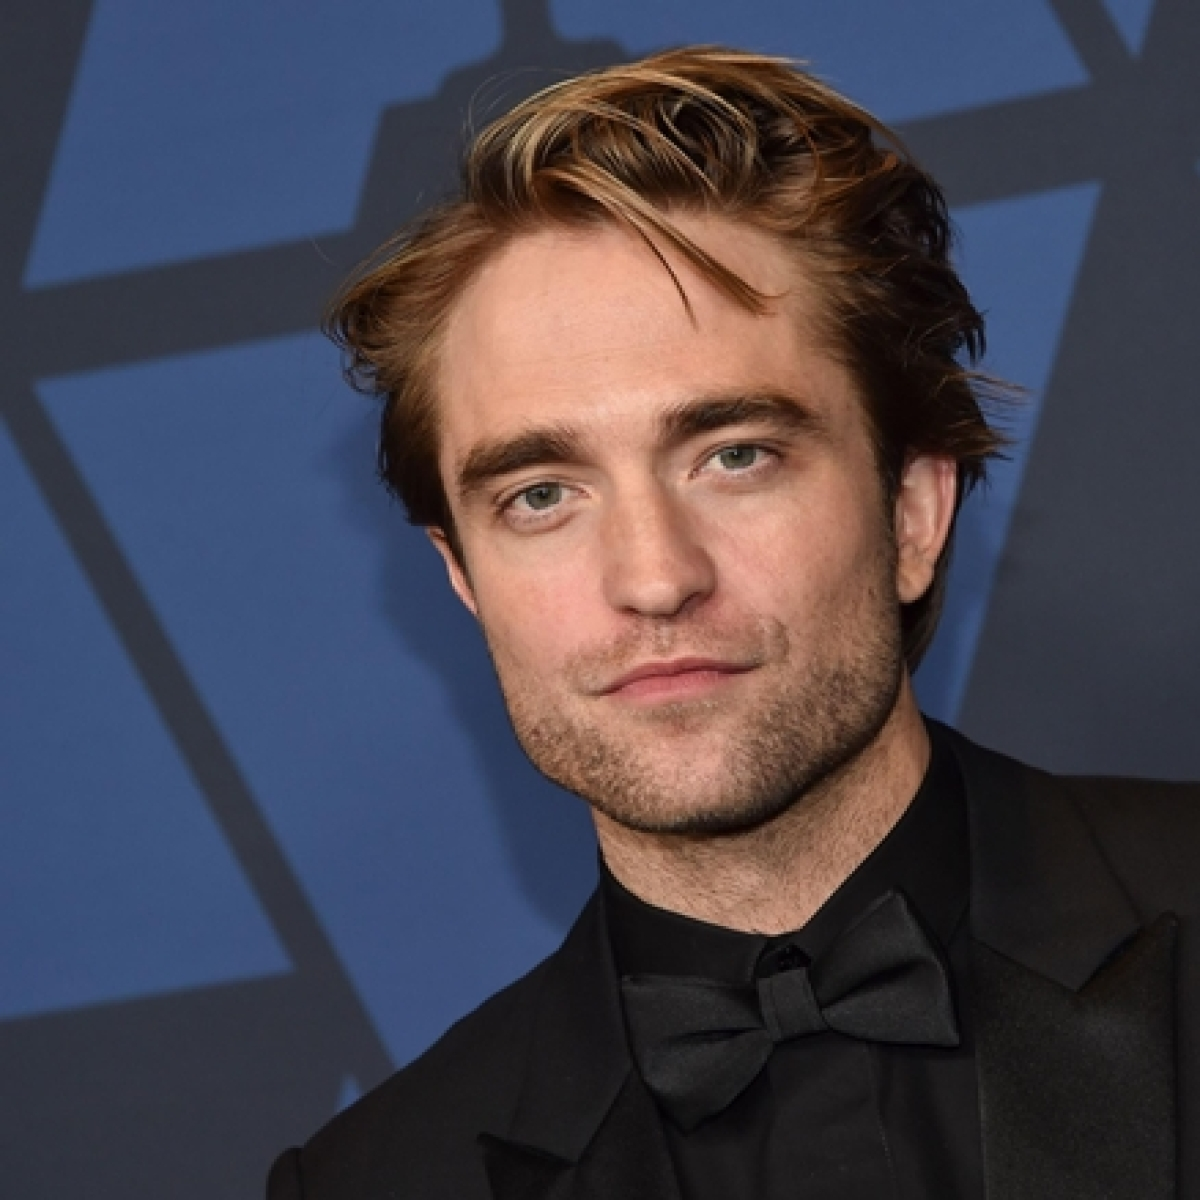 According to science, Robert Pattinson is the most handsome man in the world